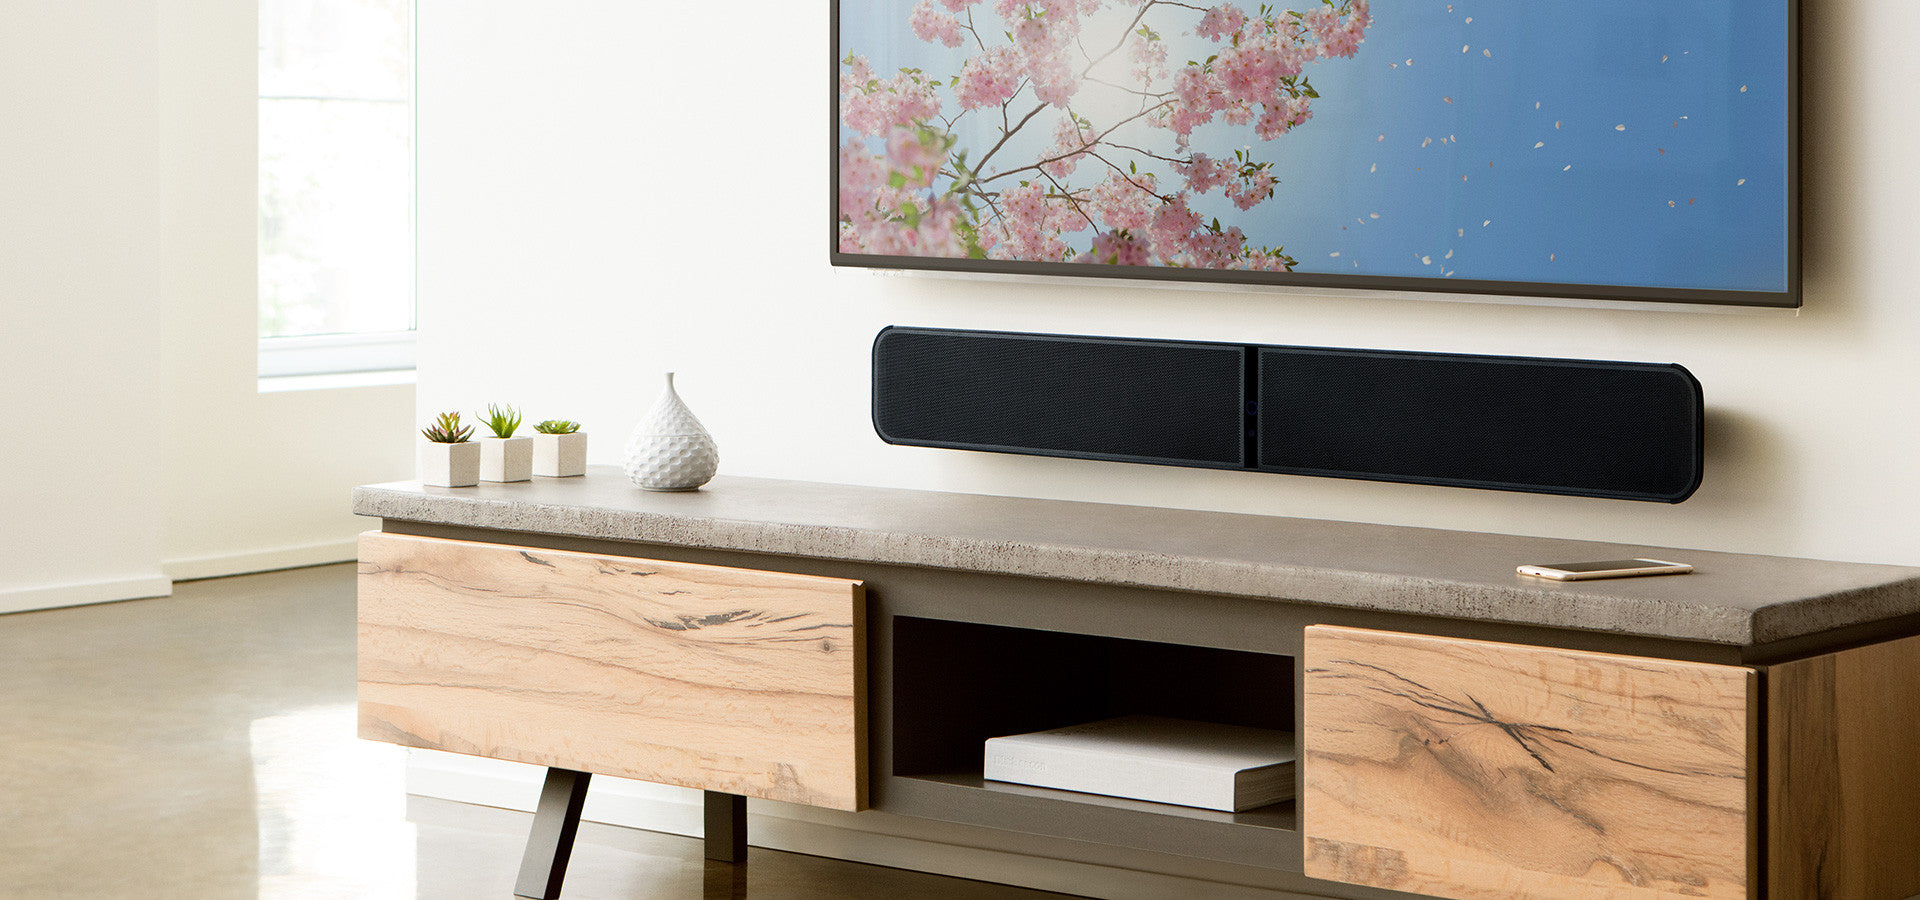 Bluesound - Pulse Soundbar 2i - Network BluOs Streaming Soundbar